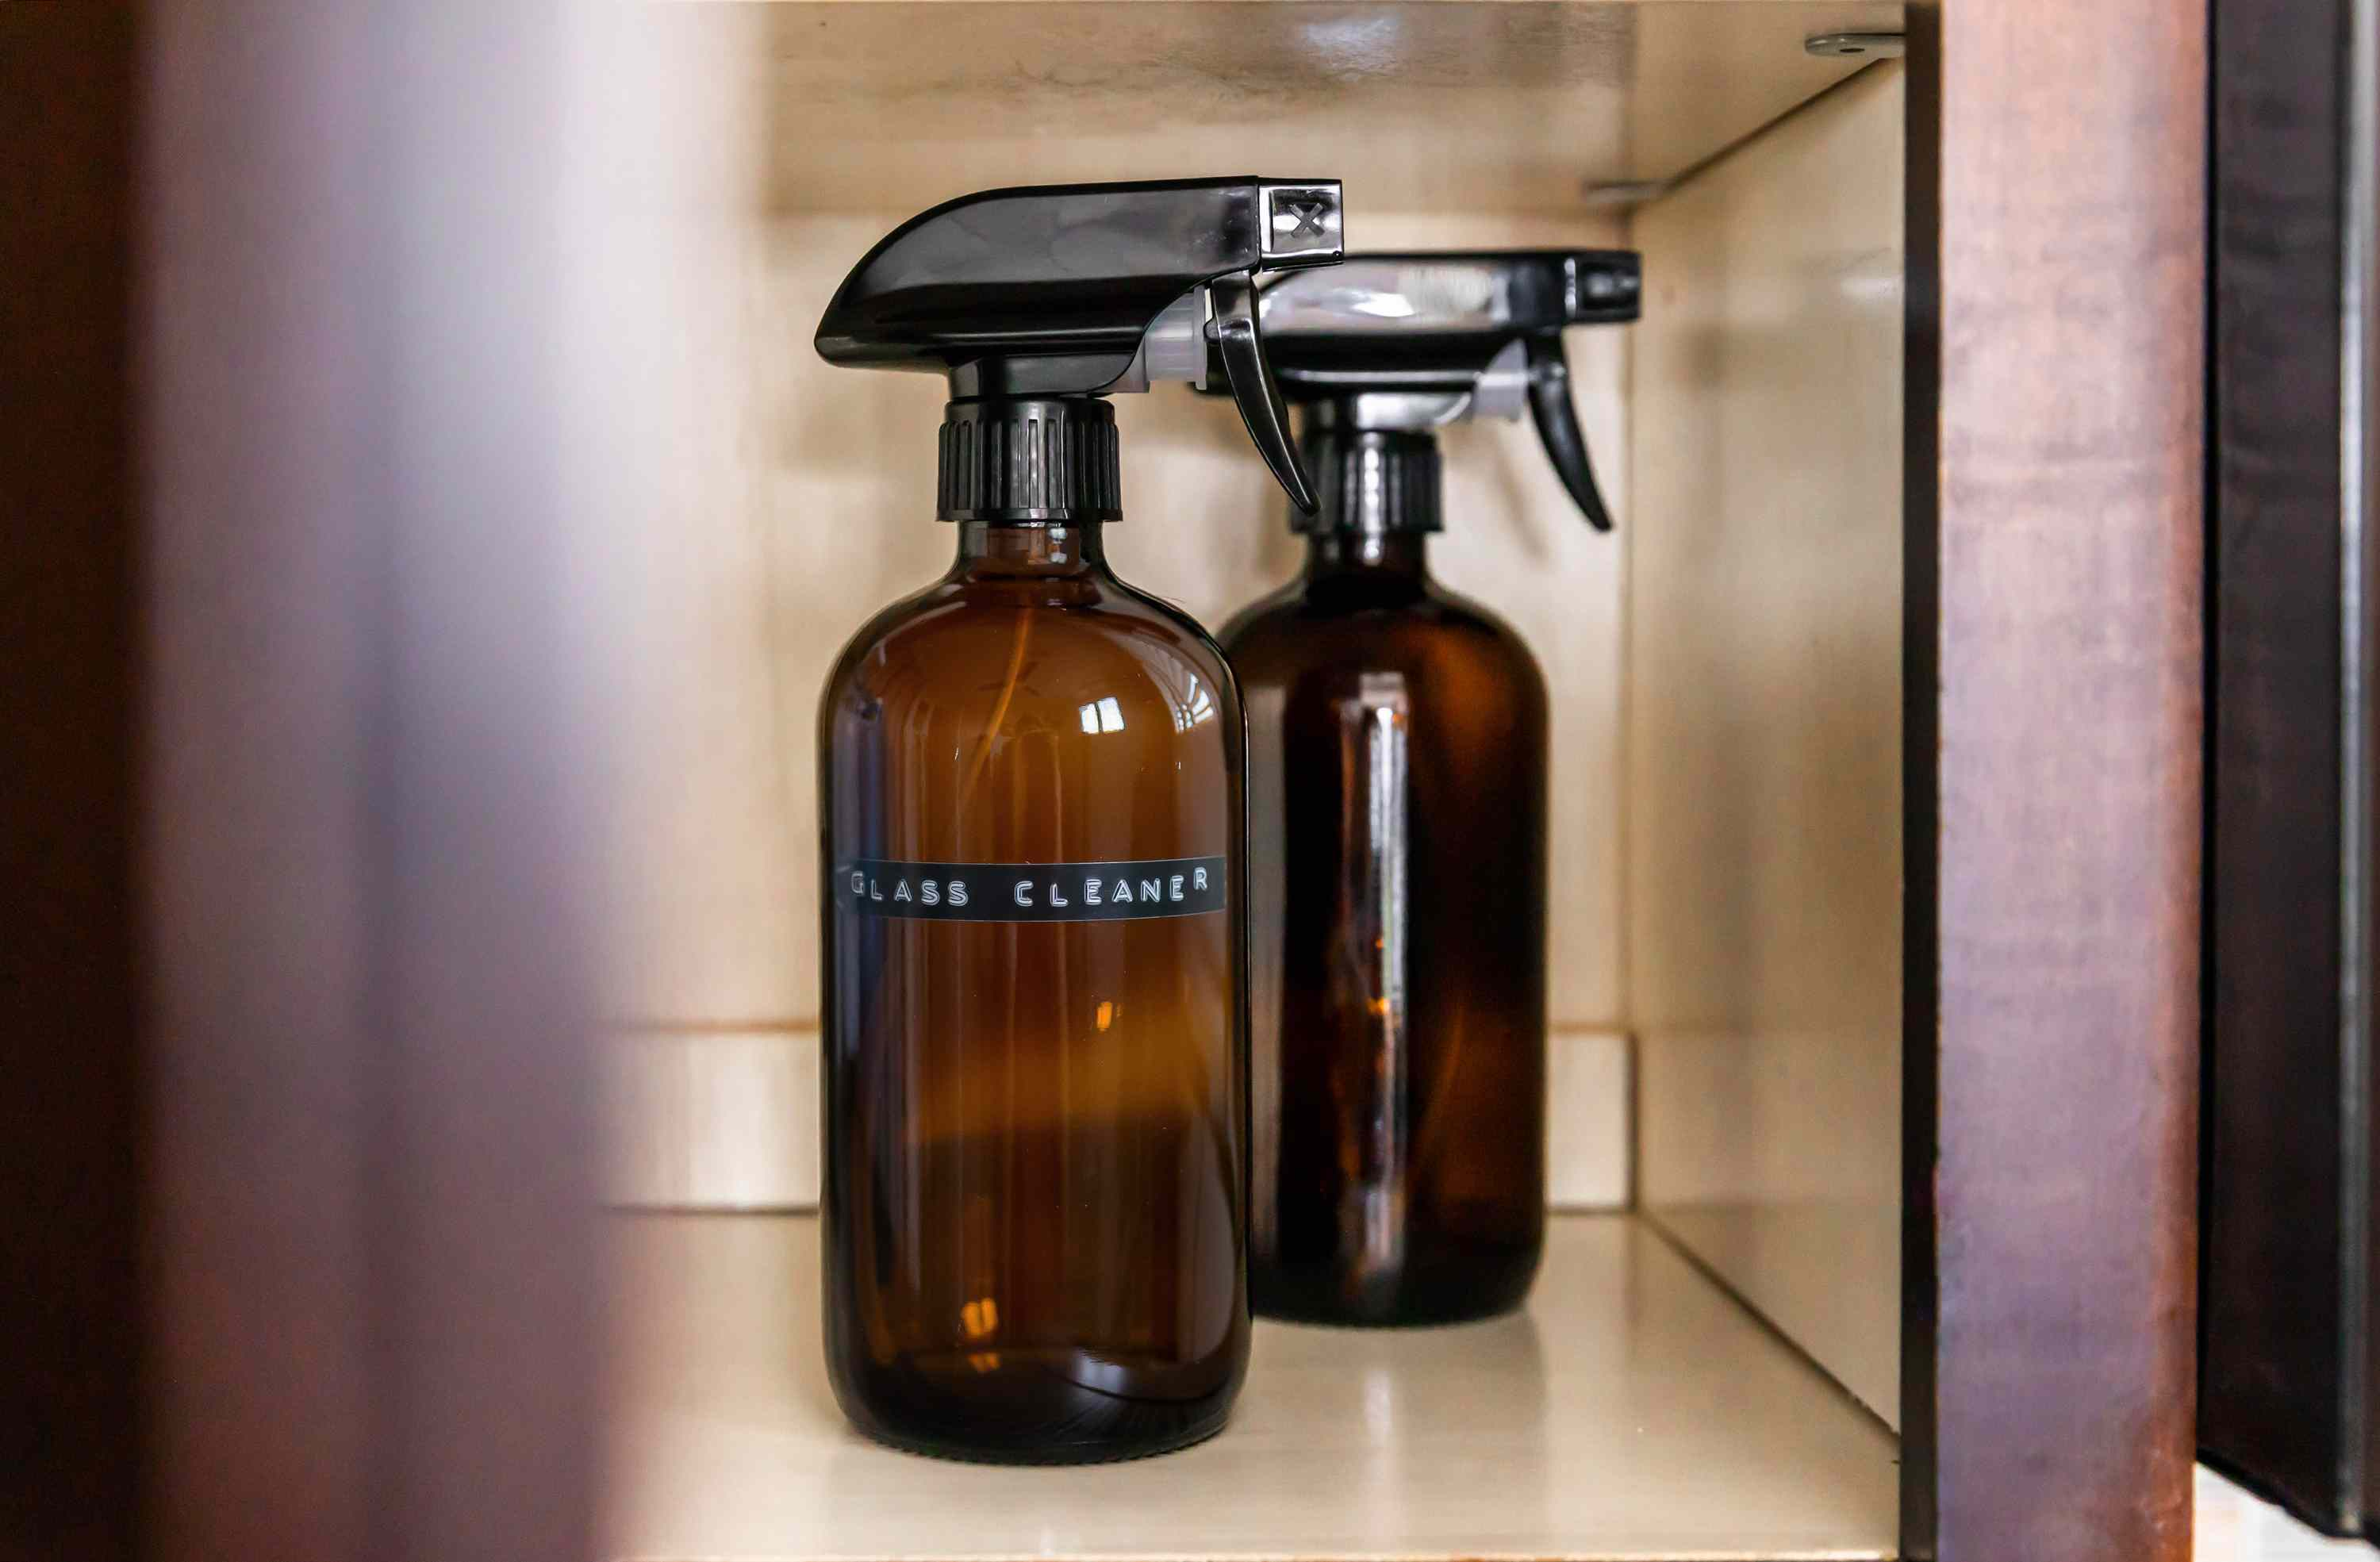 Storing and labeling glass cleaner